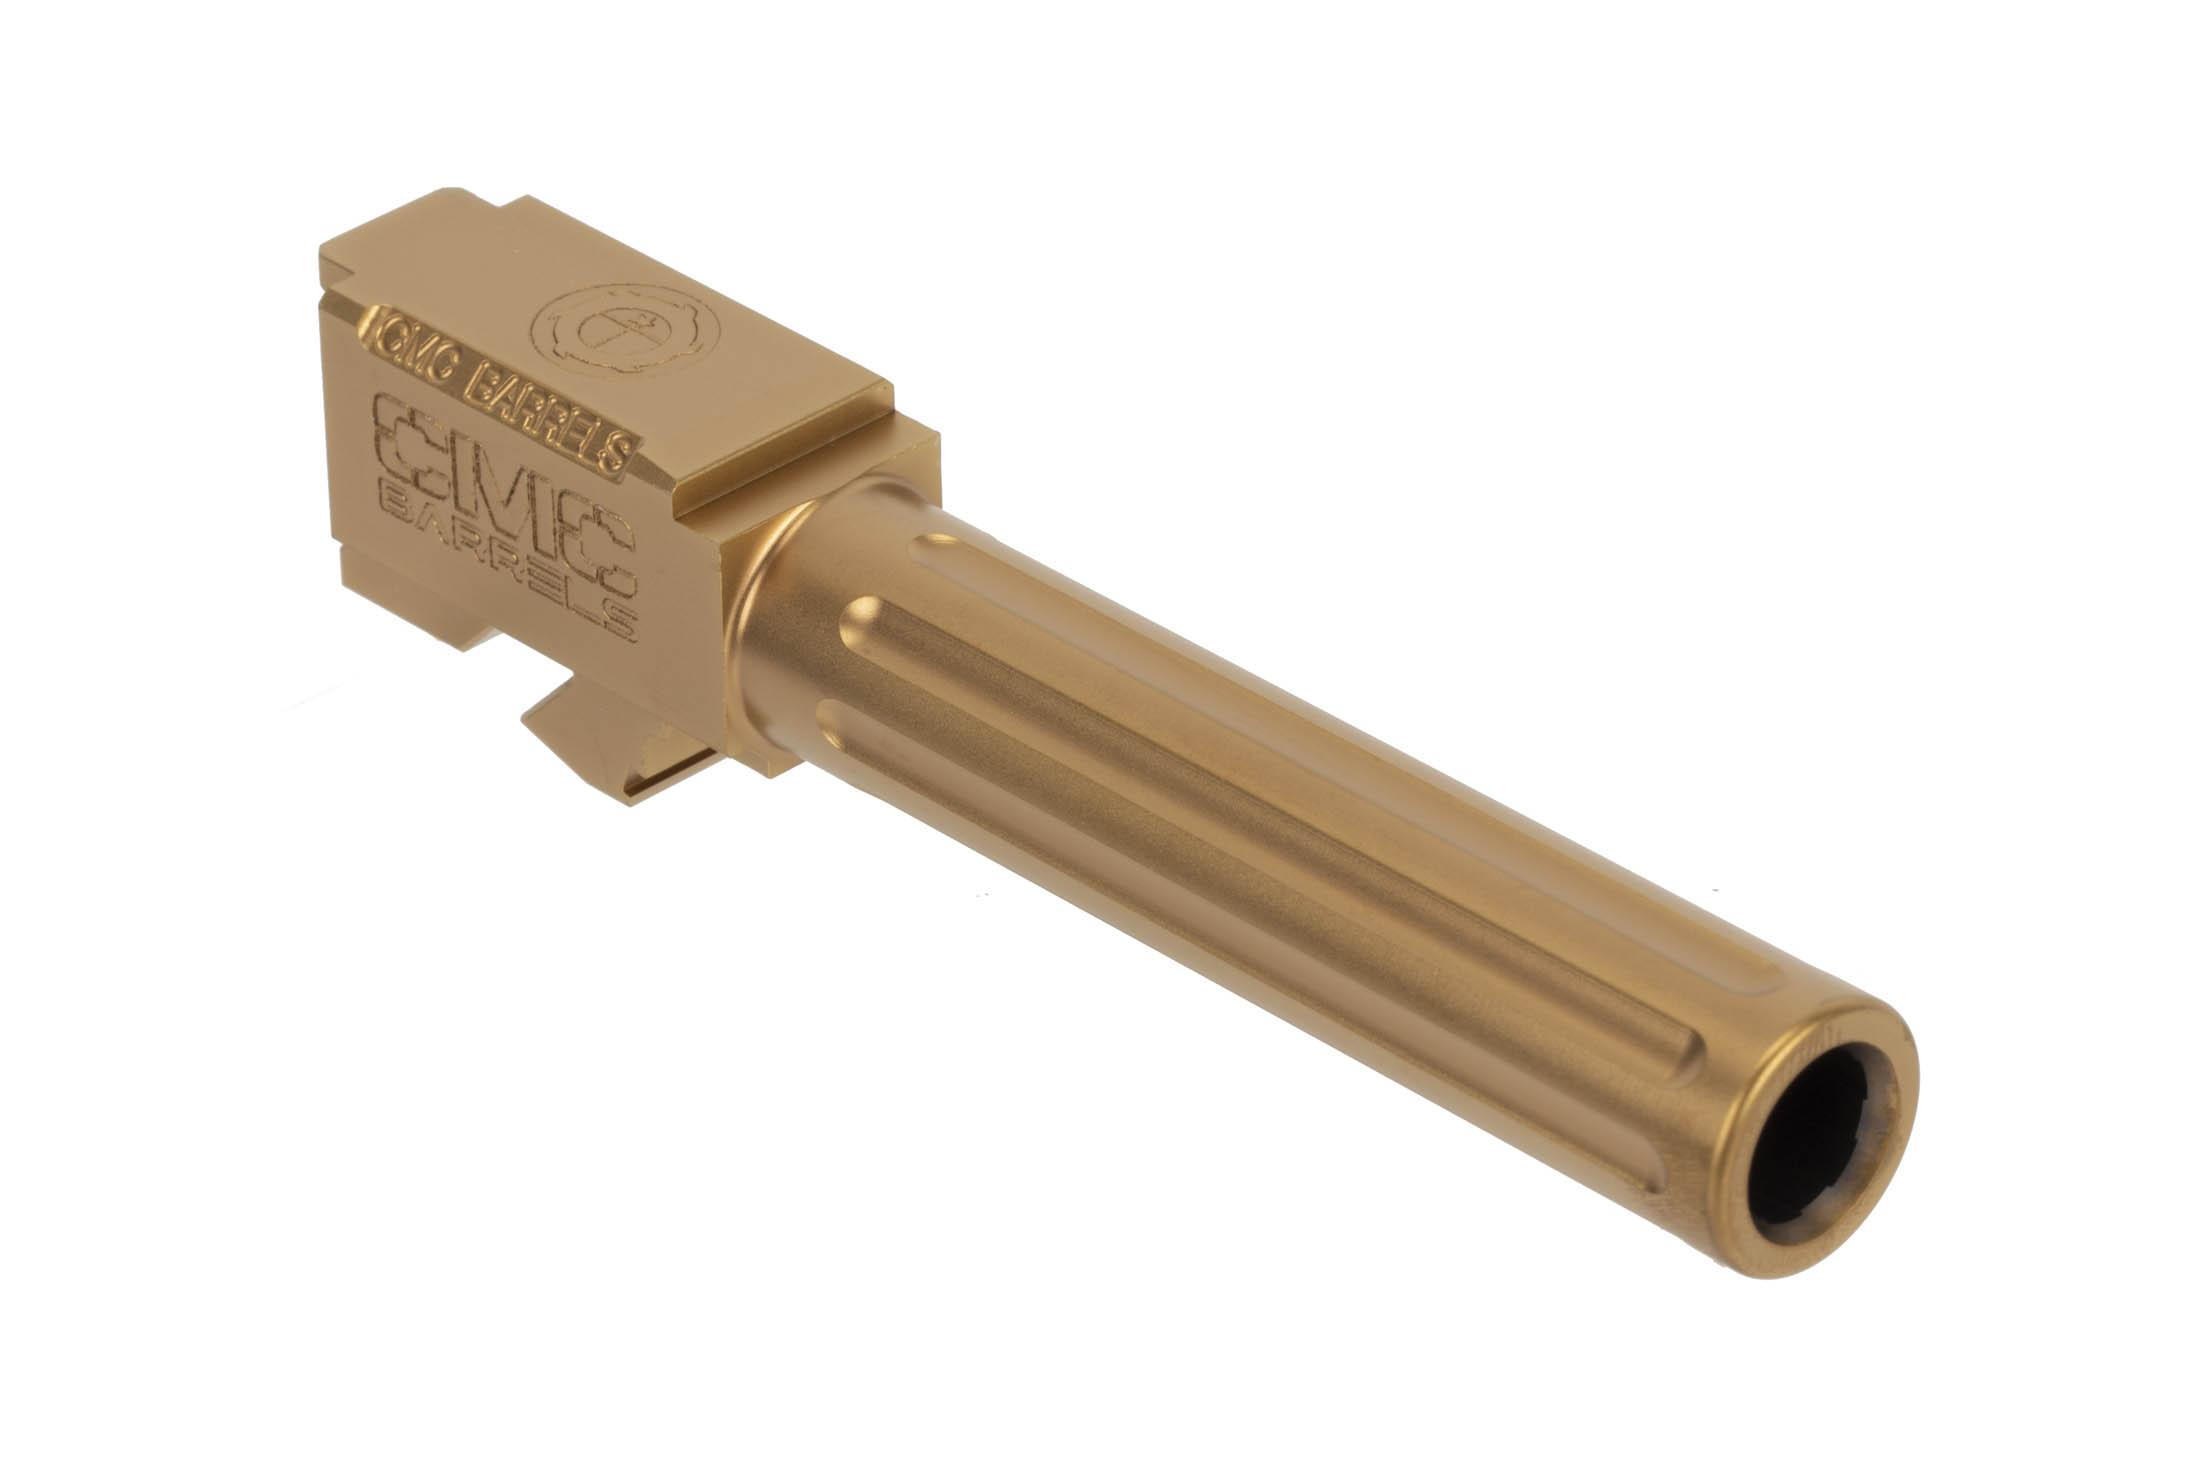 CMC Triggers Glock 19 Fluted 9mm barrel with Bronze TiCN finish